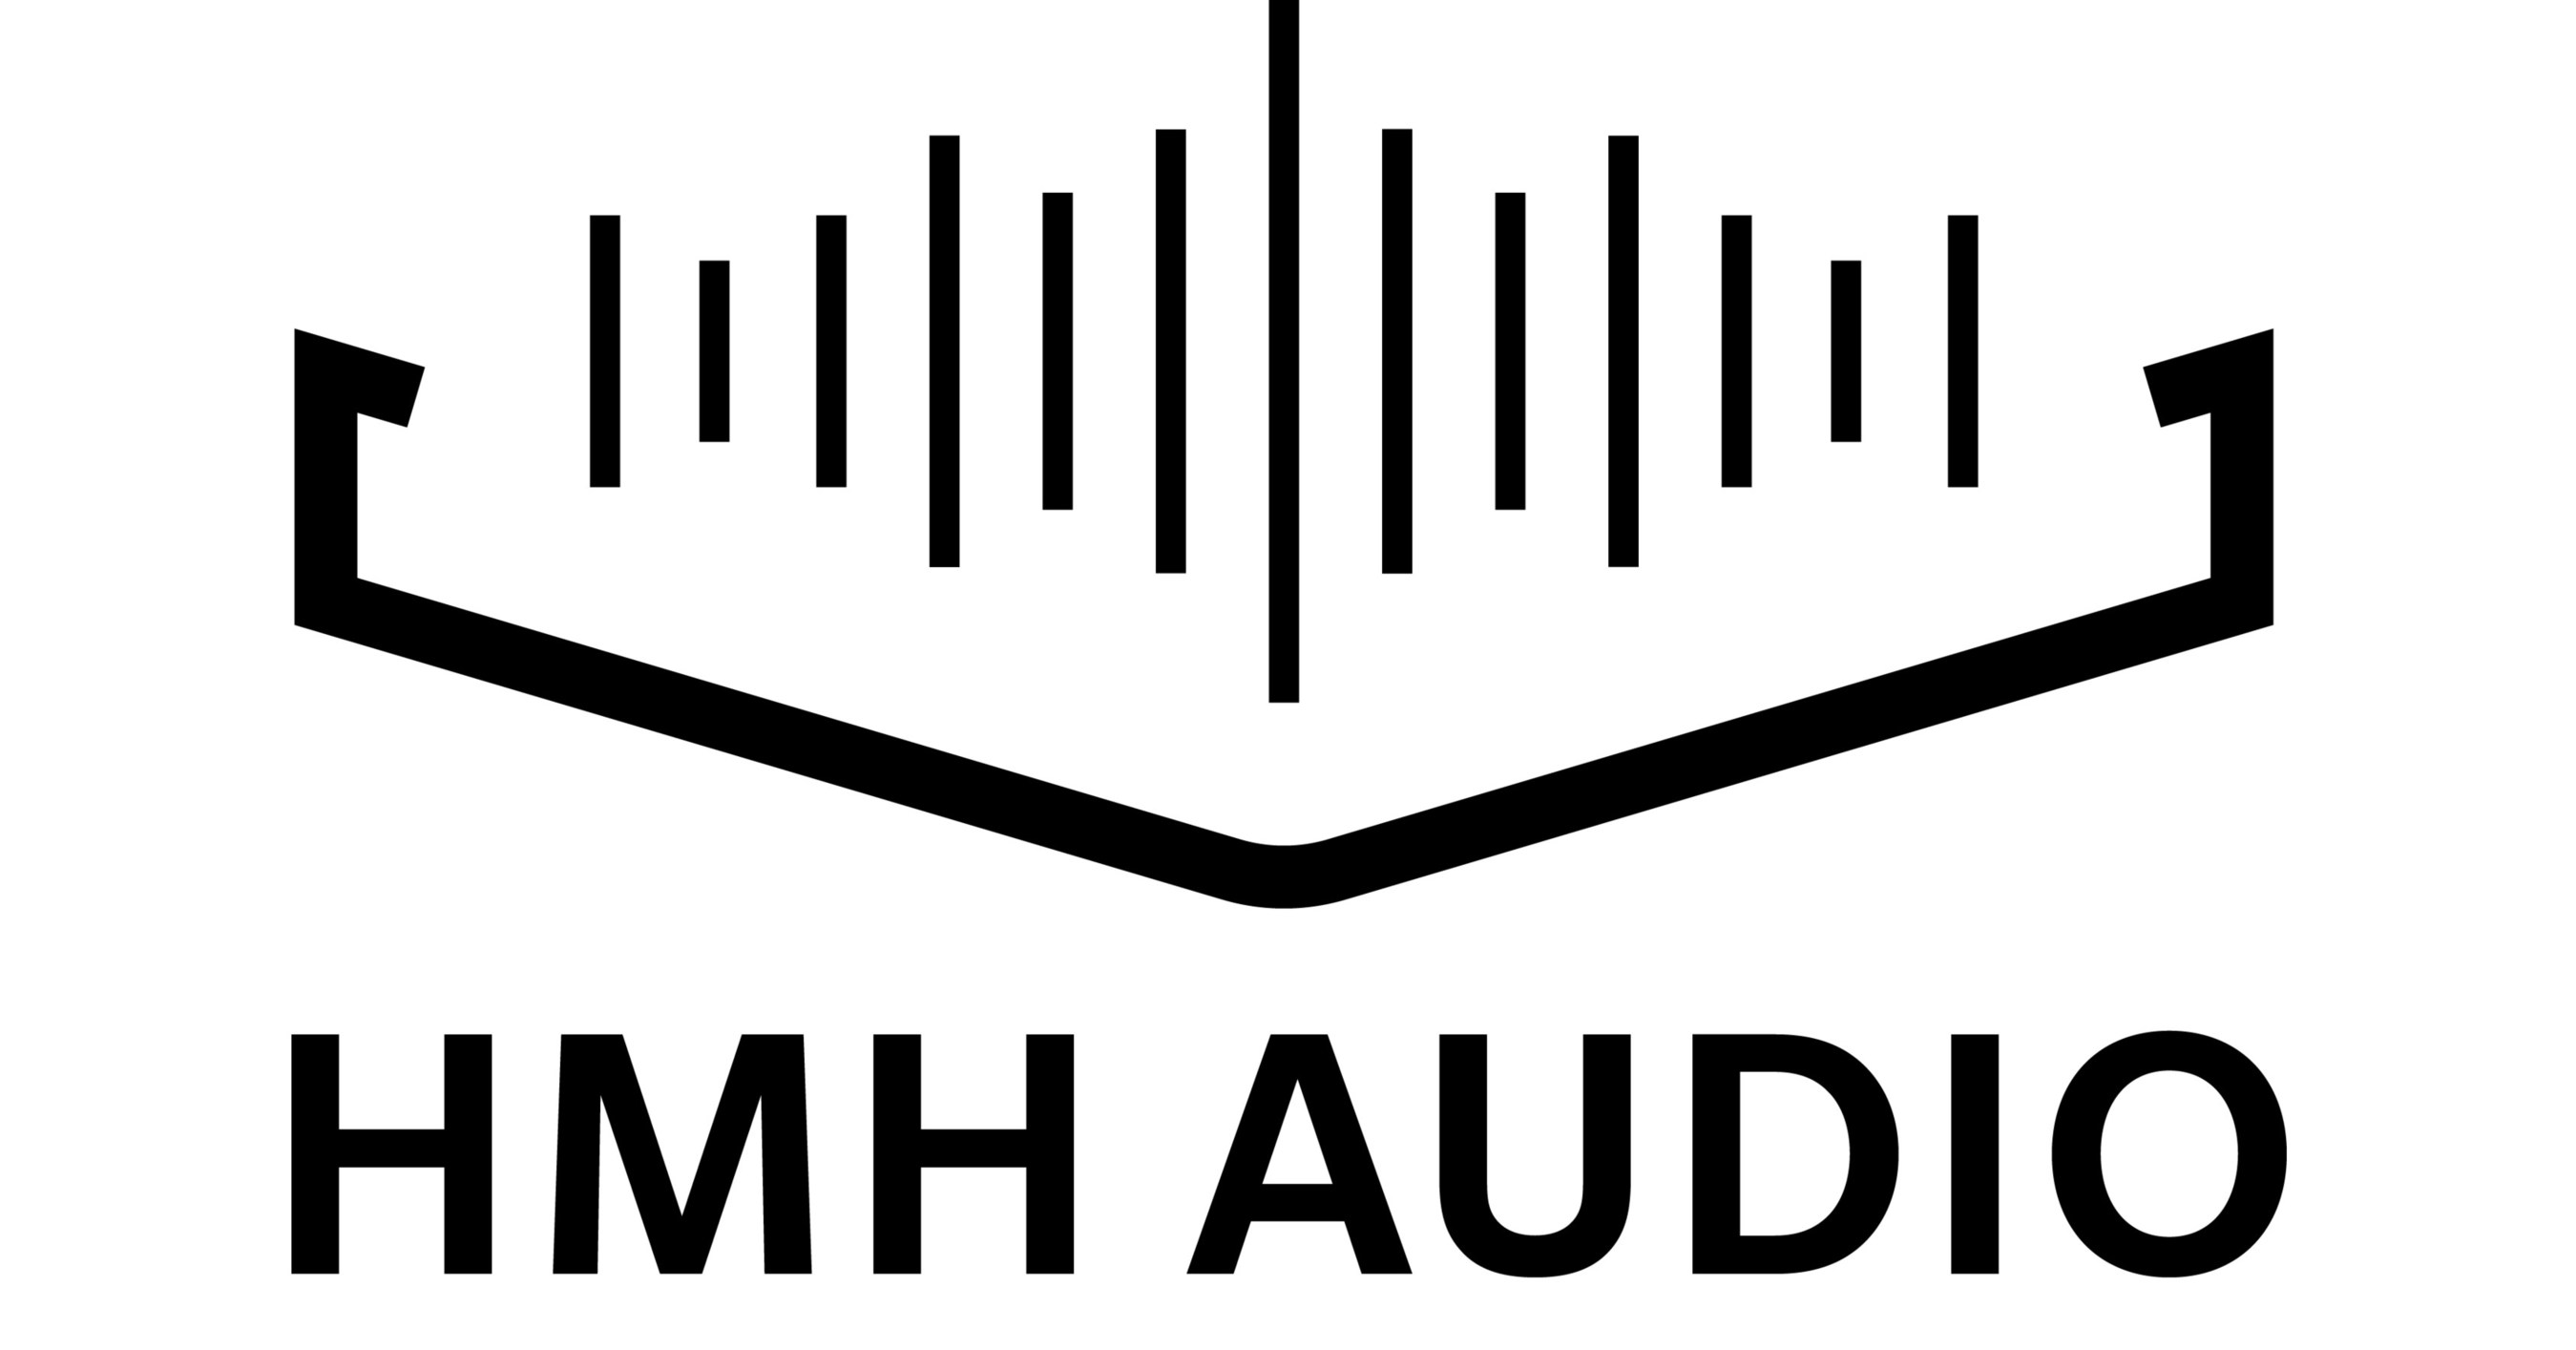 Houghton Mifflin Harcourt Launches HMH Audio, In-House